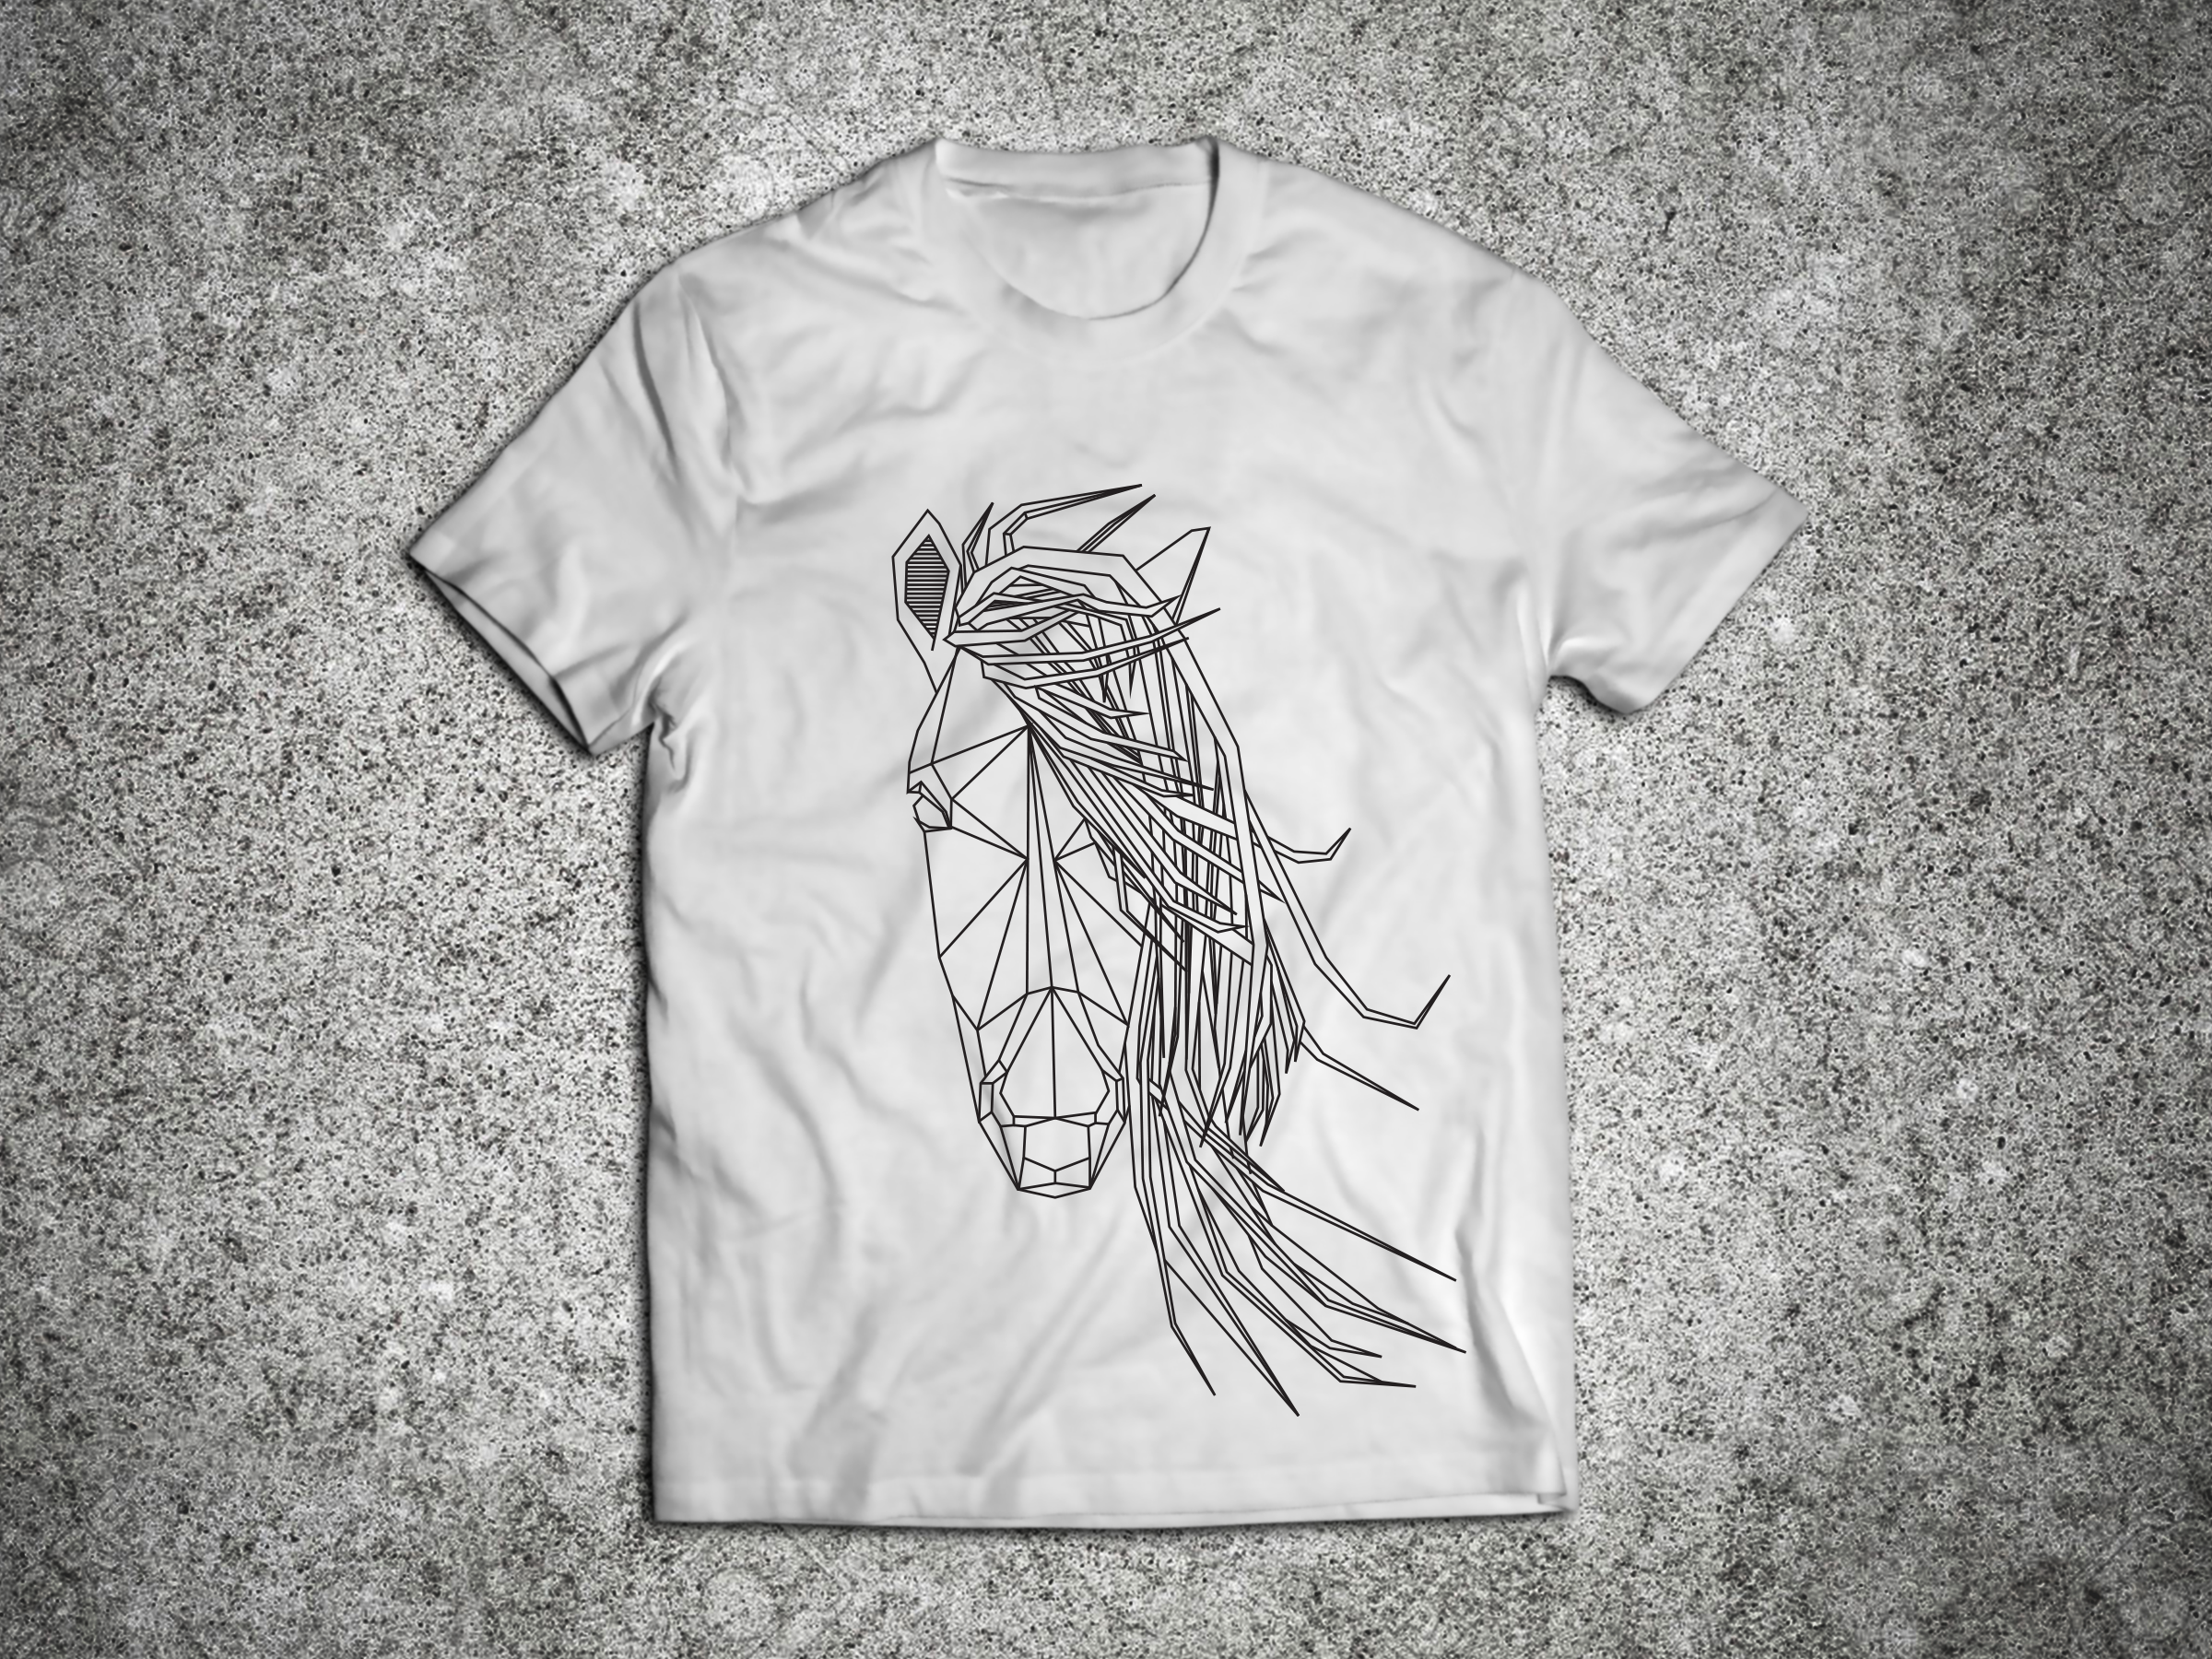 Designs for tshirts_02.png